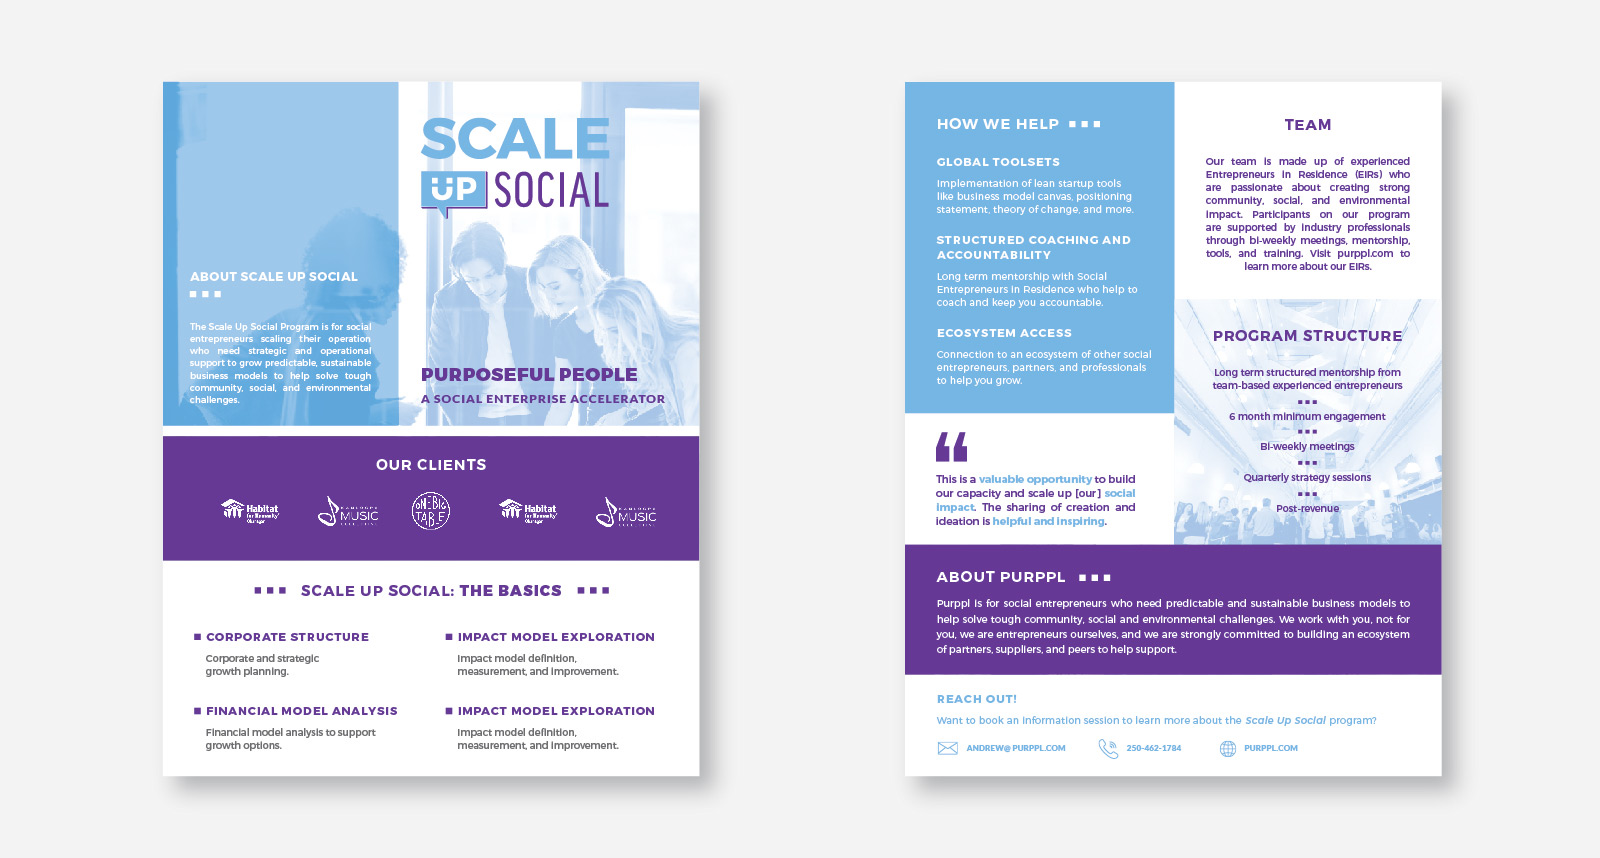 Purppl Scale Up Social Print Assets created by Catalyst Marketing